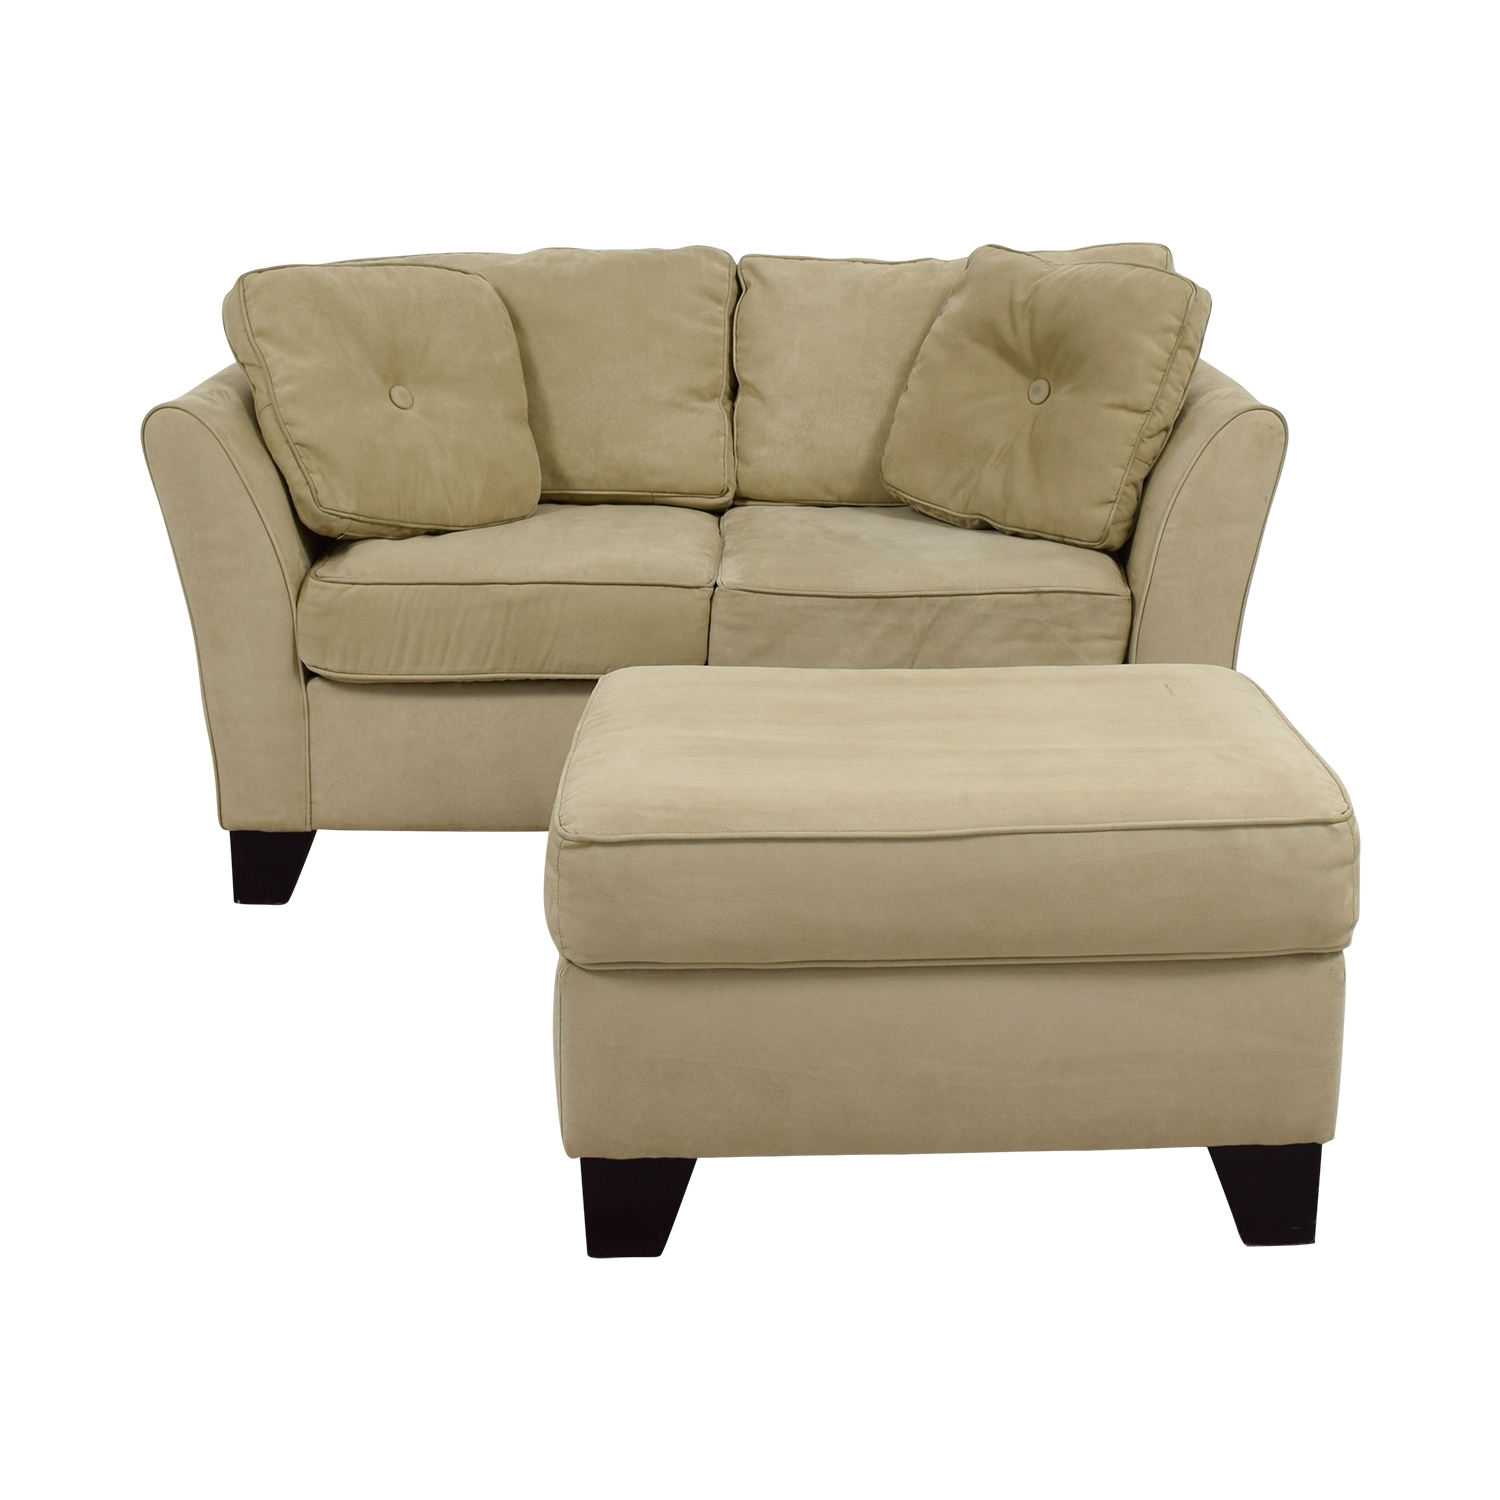 86% Off - Macy's Macy's Tan Loveseat With Ottoman / Sofas inside Loveseats With Ottoman